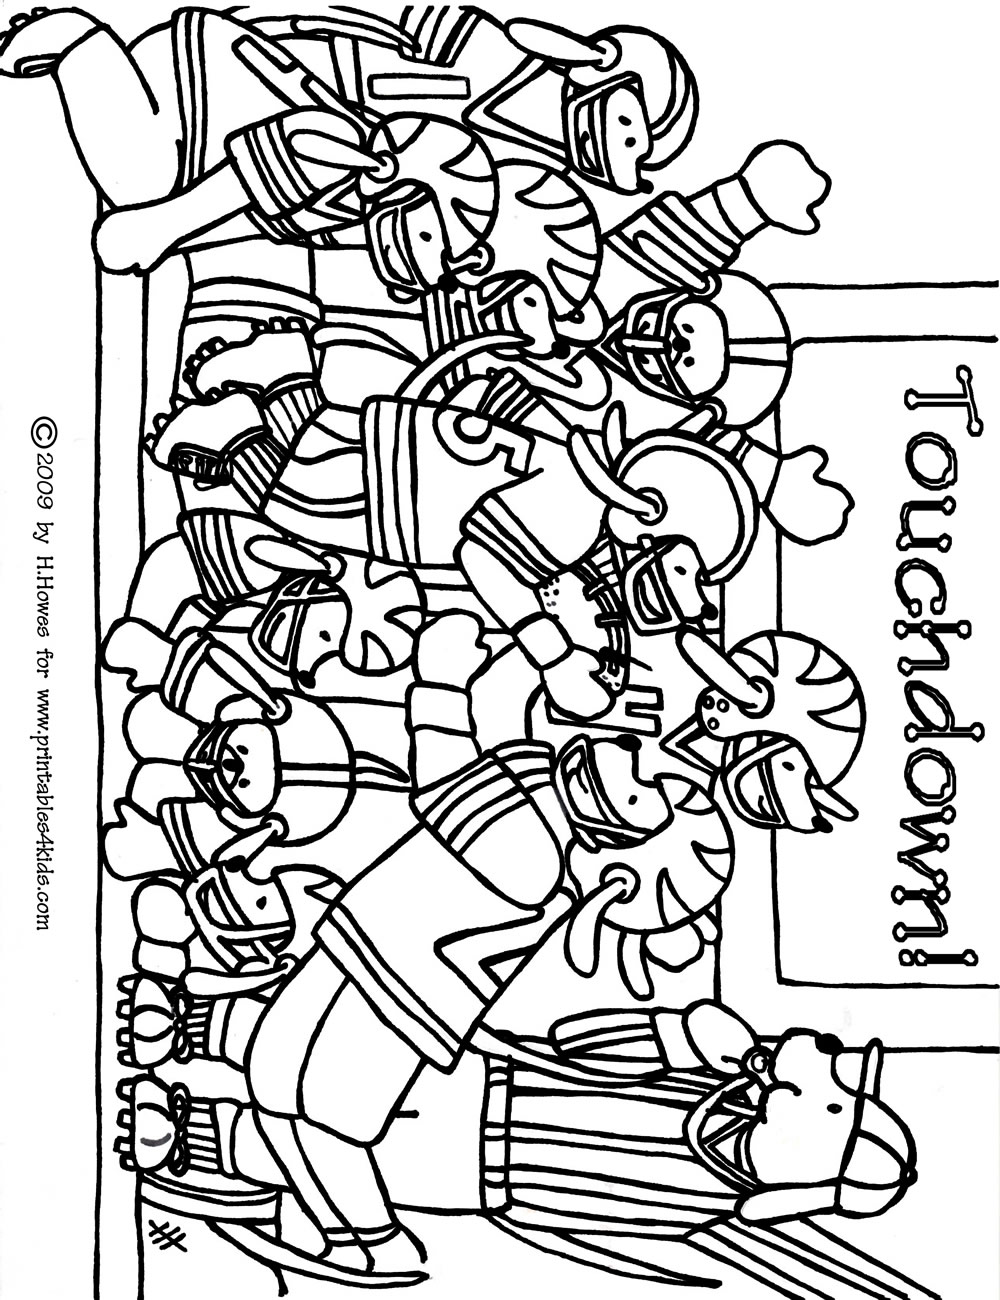 football game coloring page printables for kids free word search puzzles coloring pages and other activities